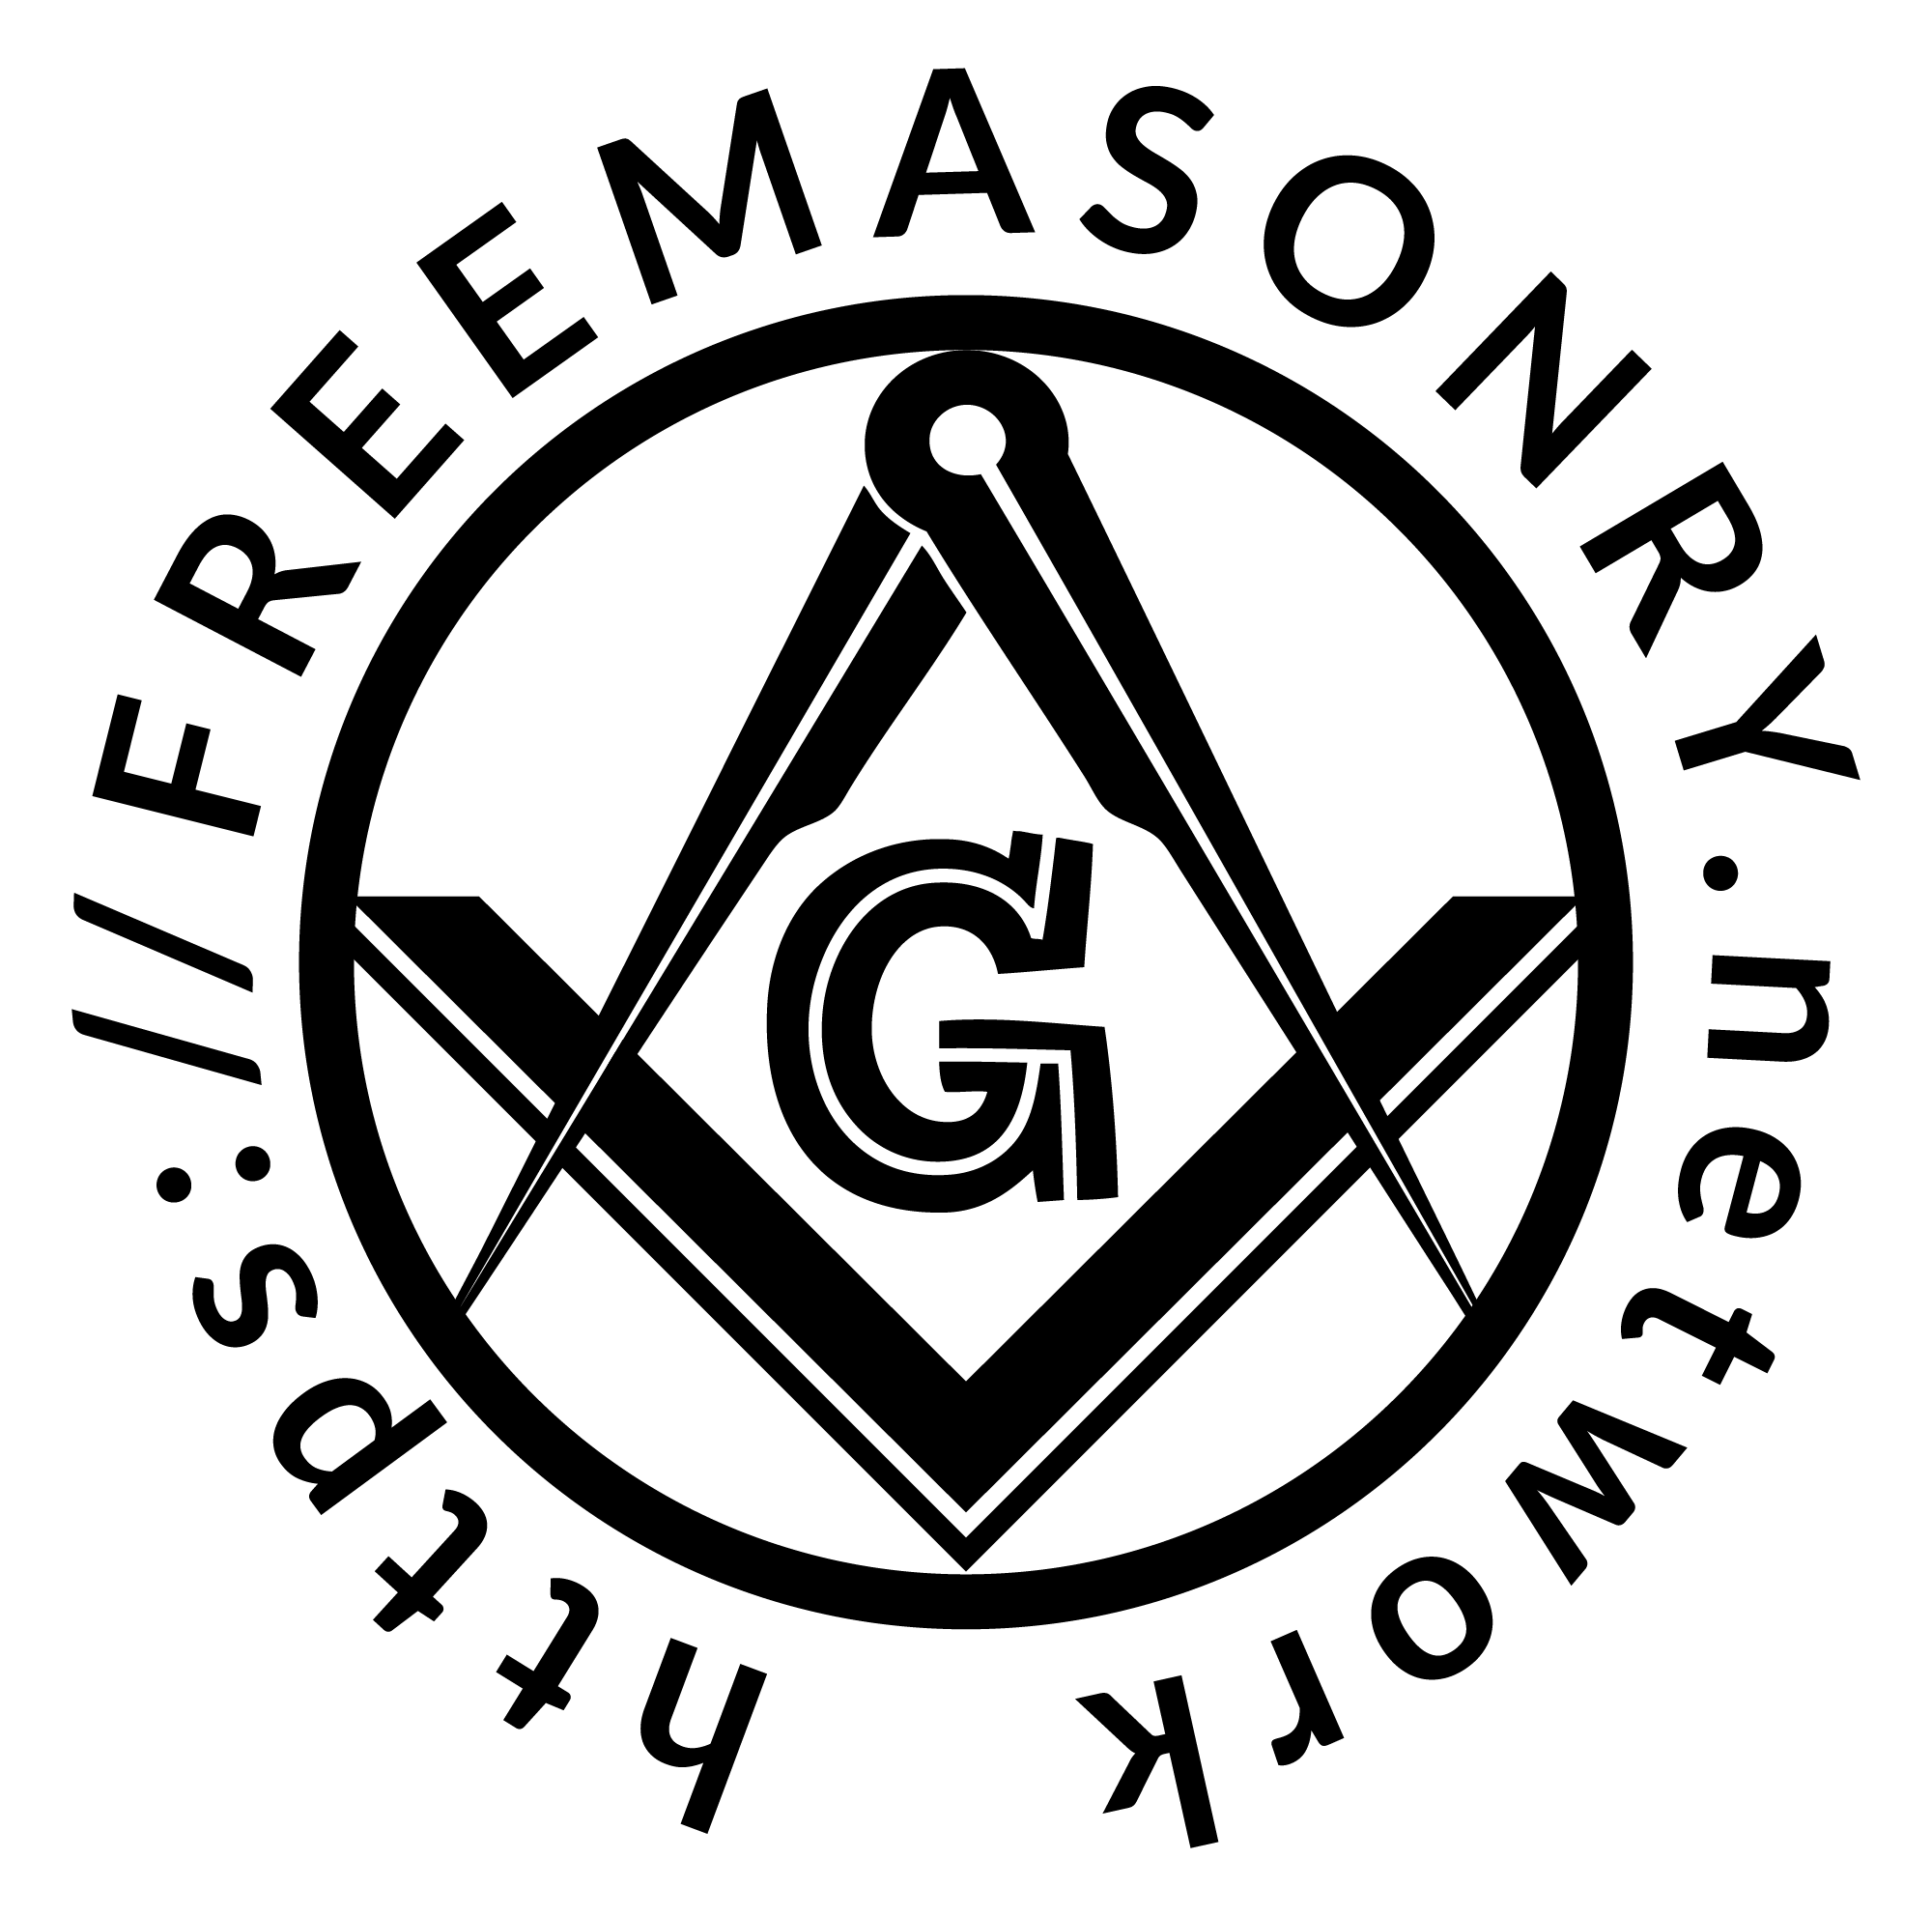 HISTORY OF LIBERAL FREEMASONRY